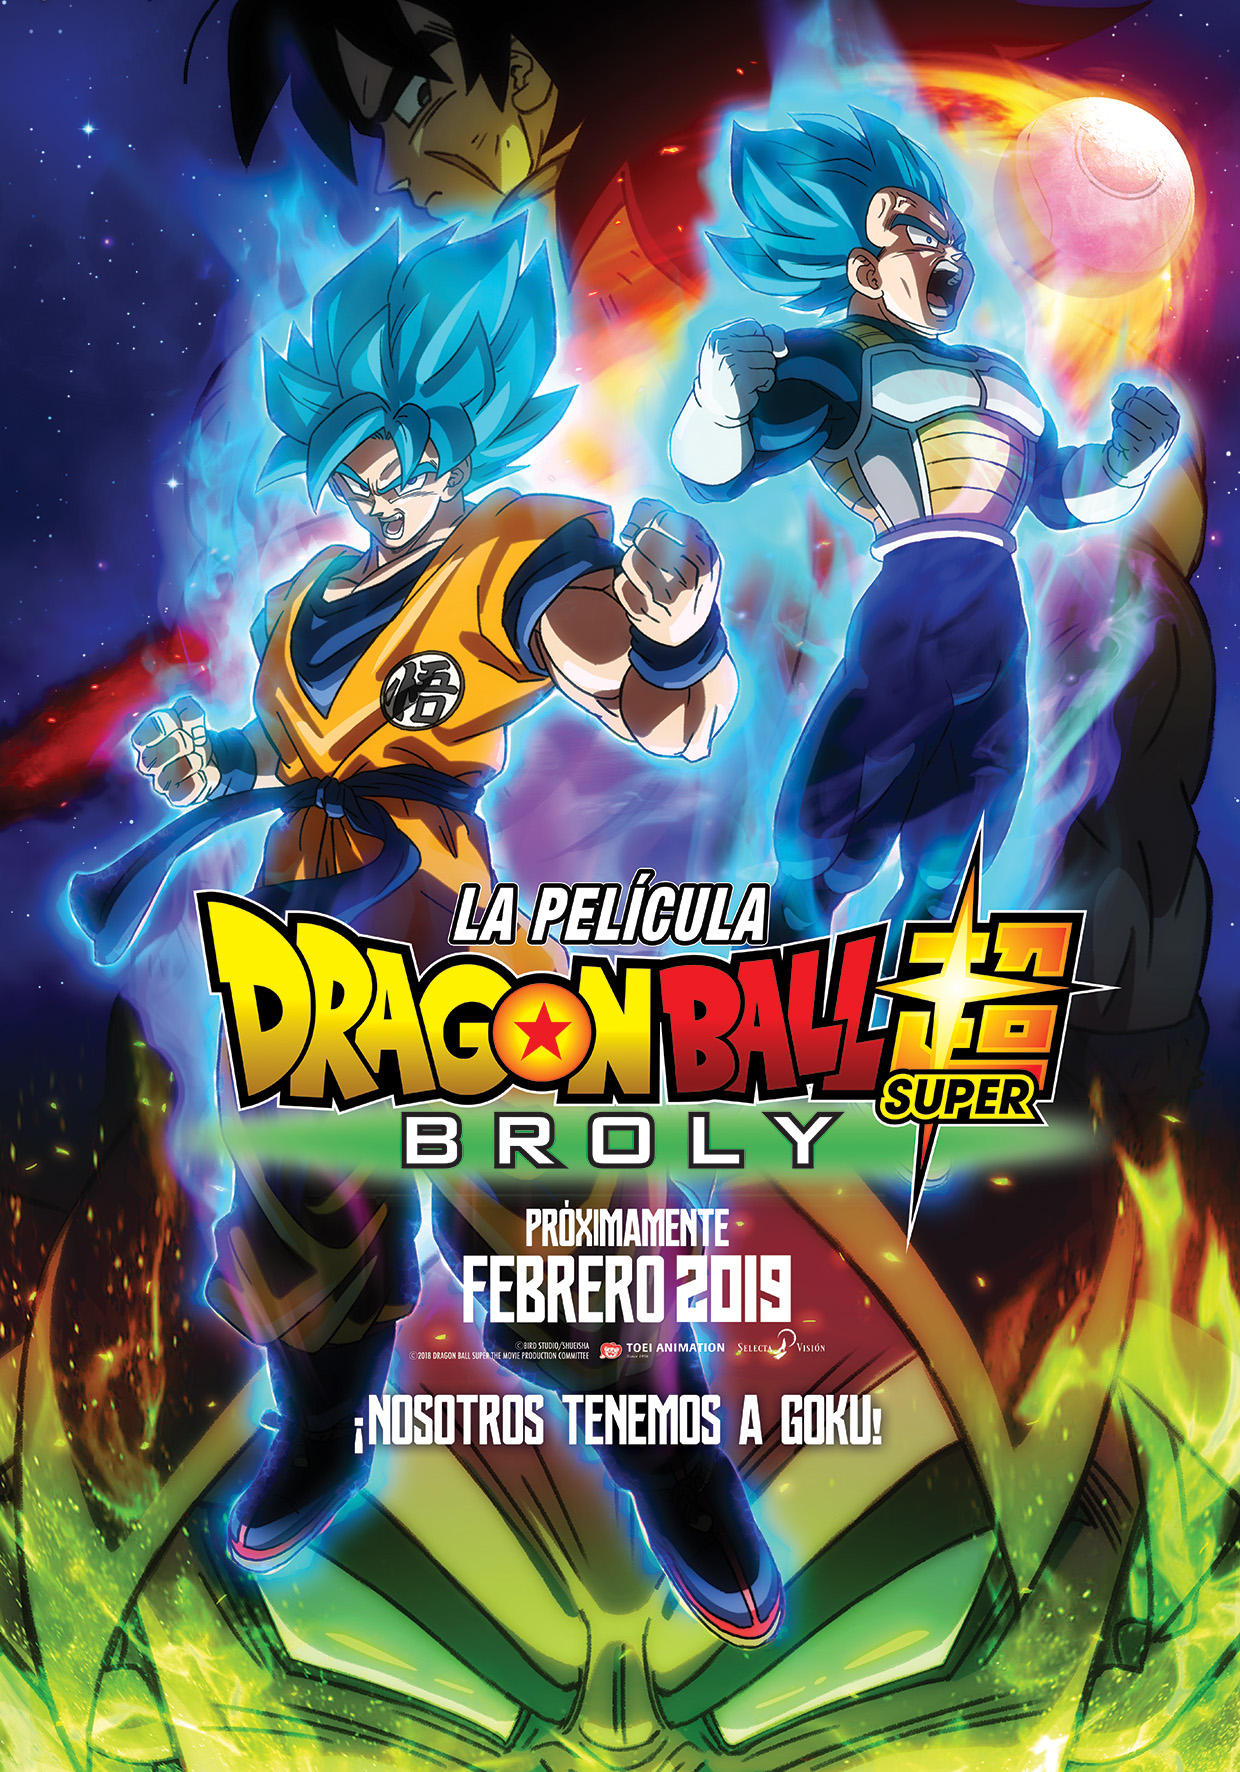 Watch/Ver Online Anime Movie Dragon Ball Super Broly A